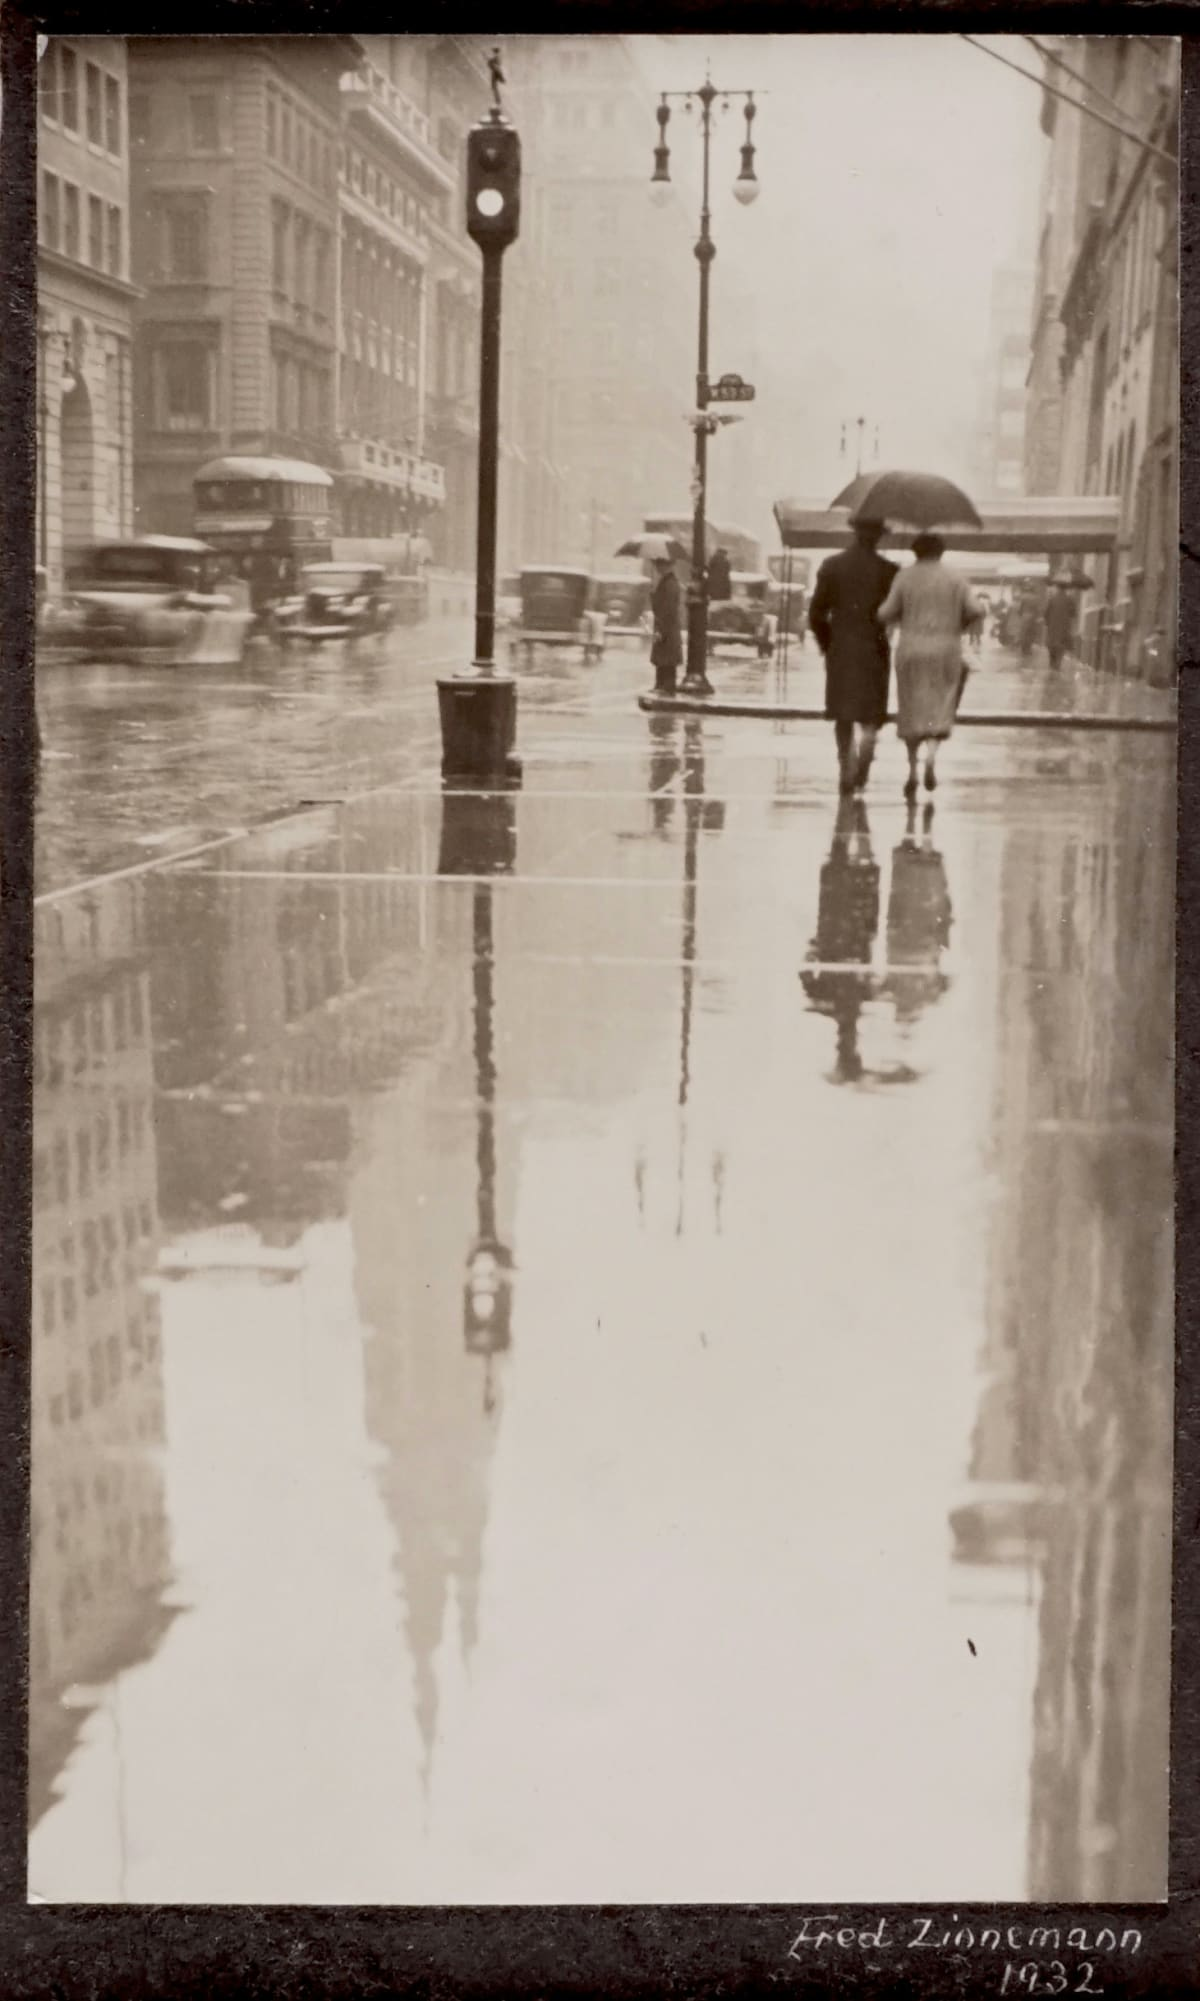 Fred Zinnemann Rainy Day, Fifth Avenue, New York, 1932 Vintage gelatin silver print 6 x 3 3/4 inches; Signed & dated in ink on recto